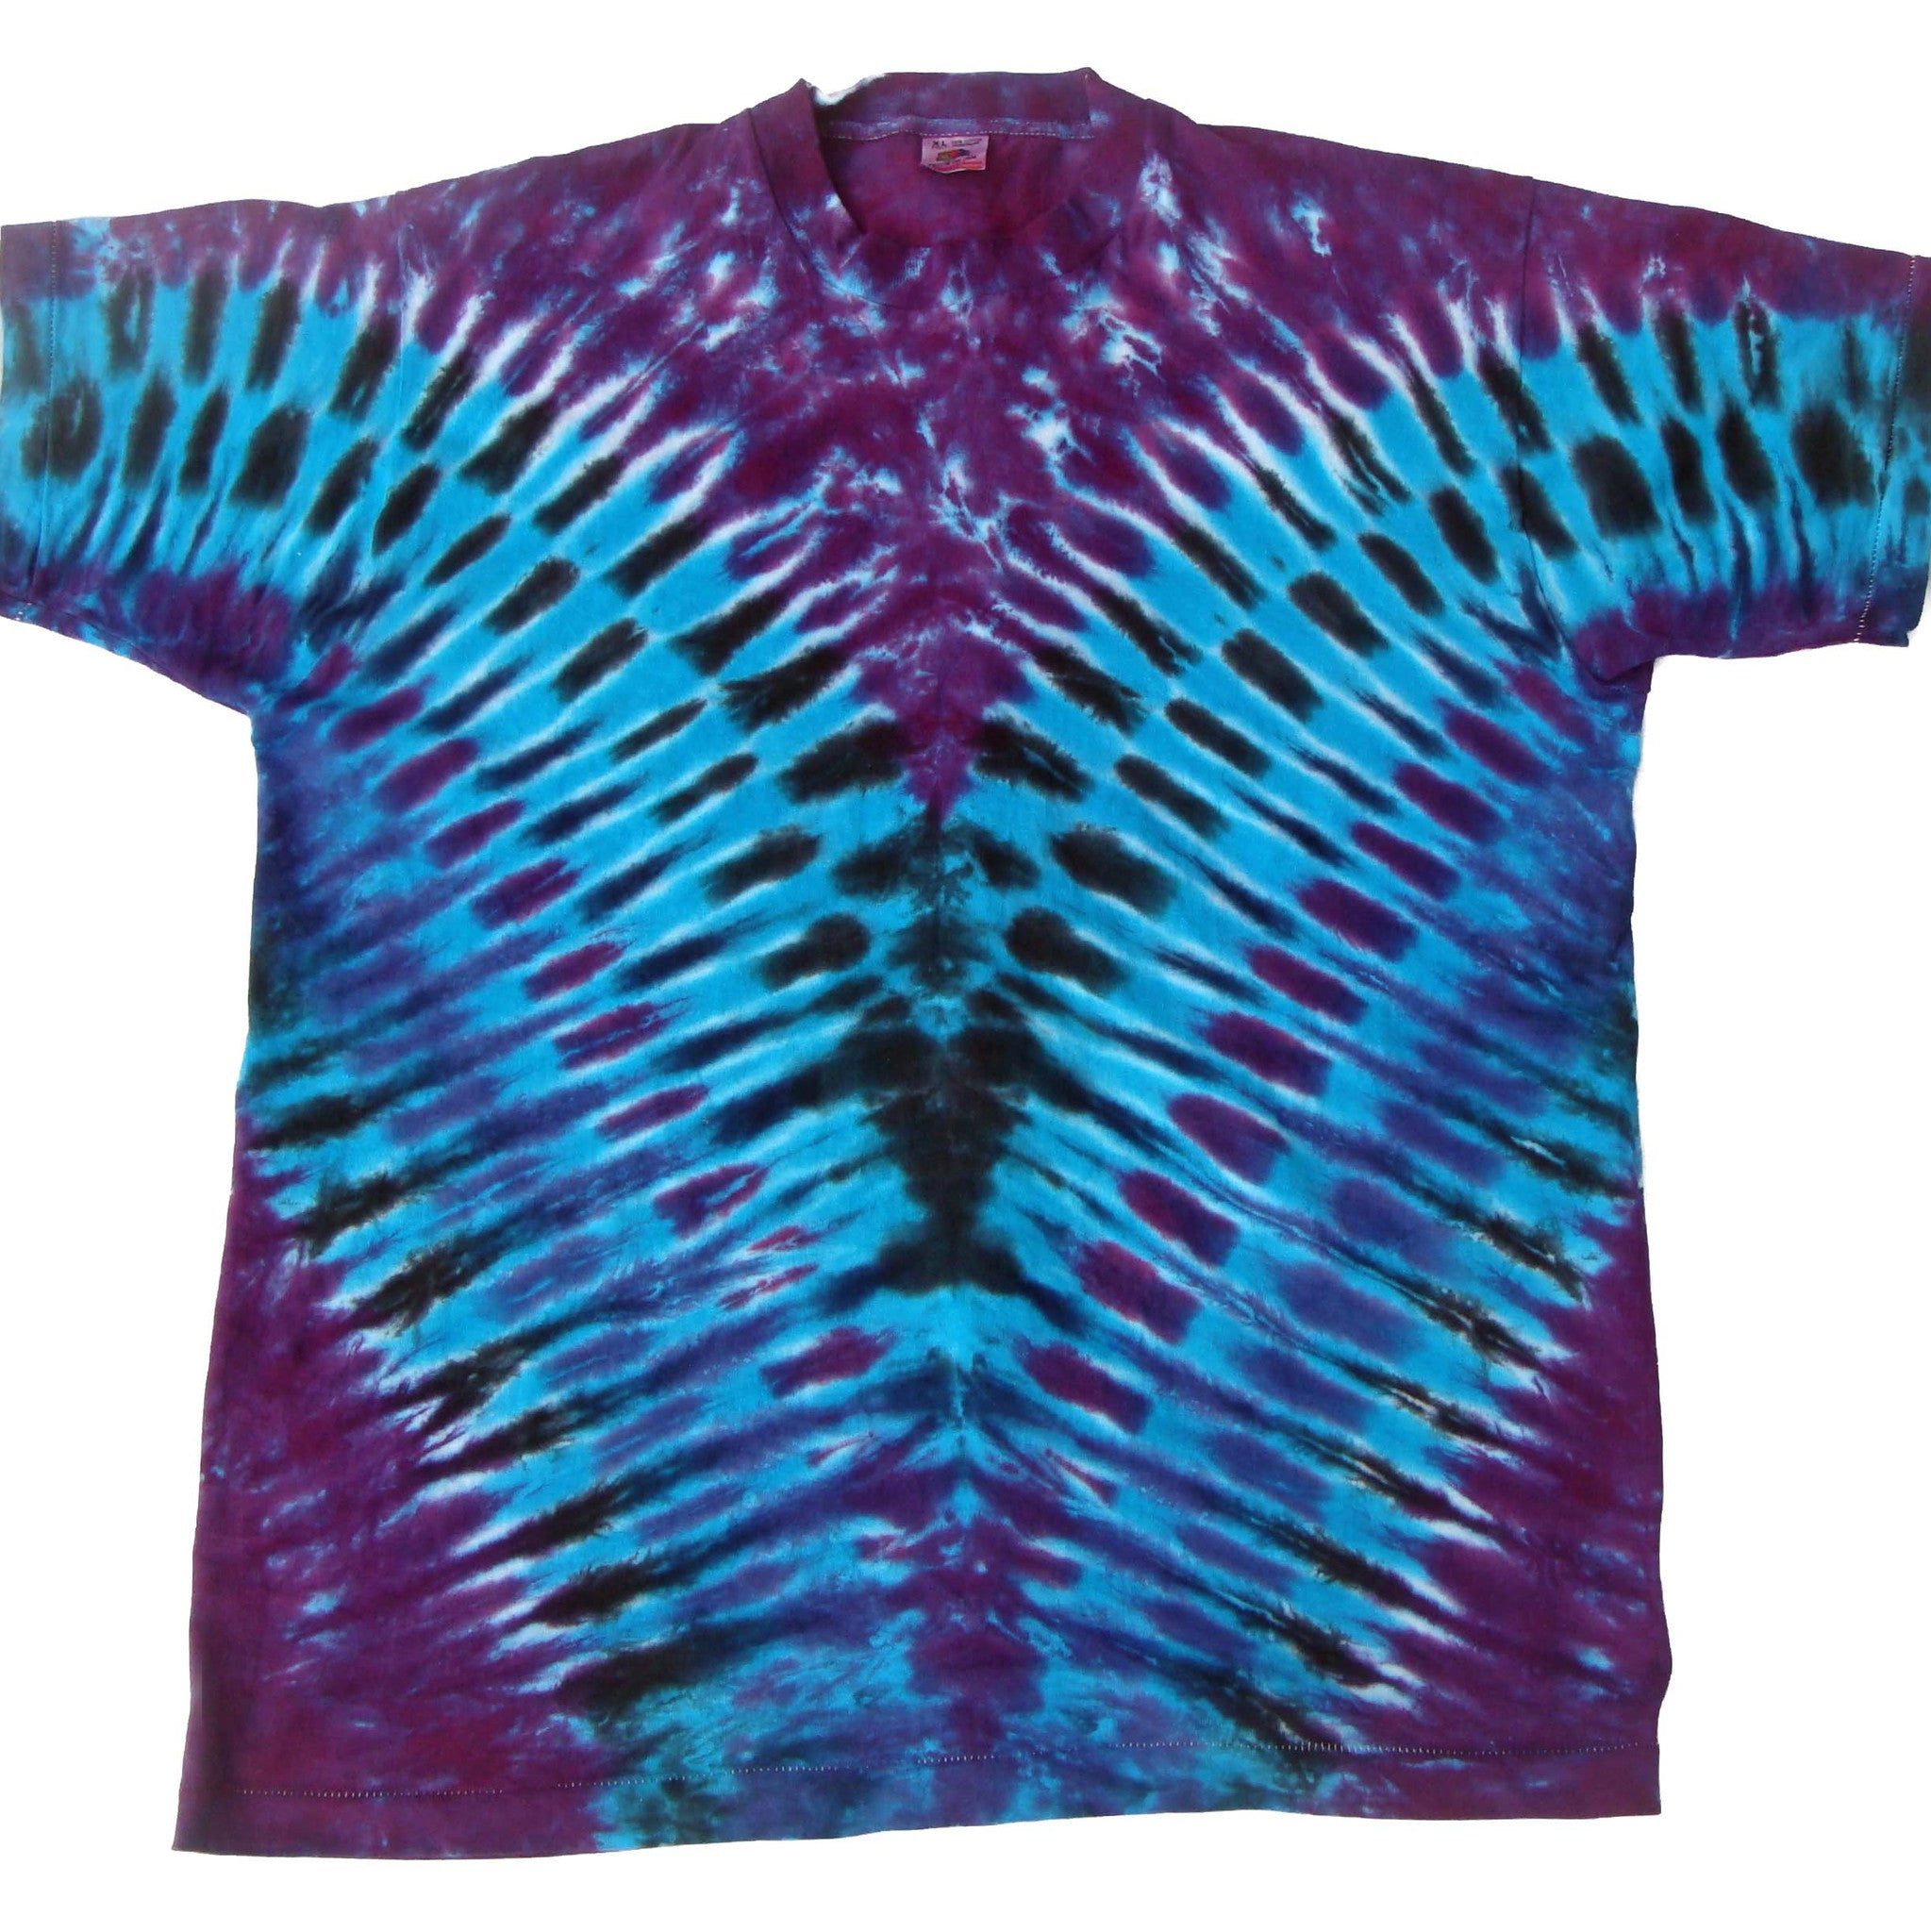 V Blues Tie Dye Shirt